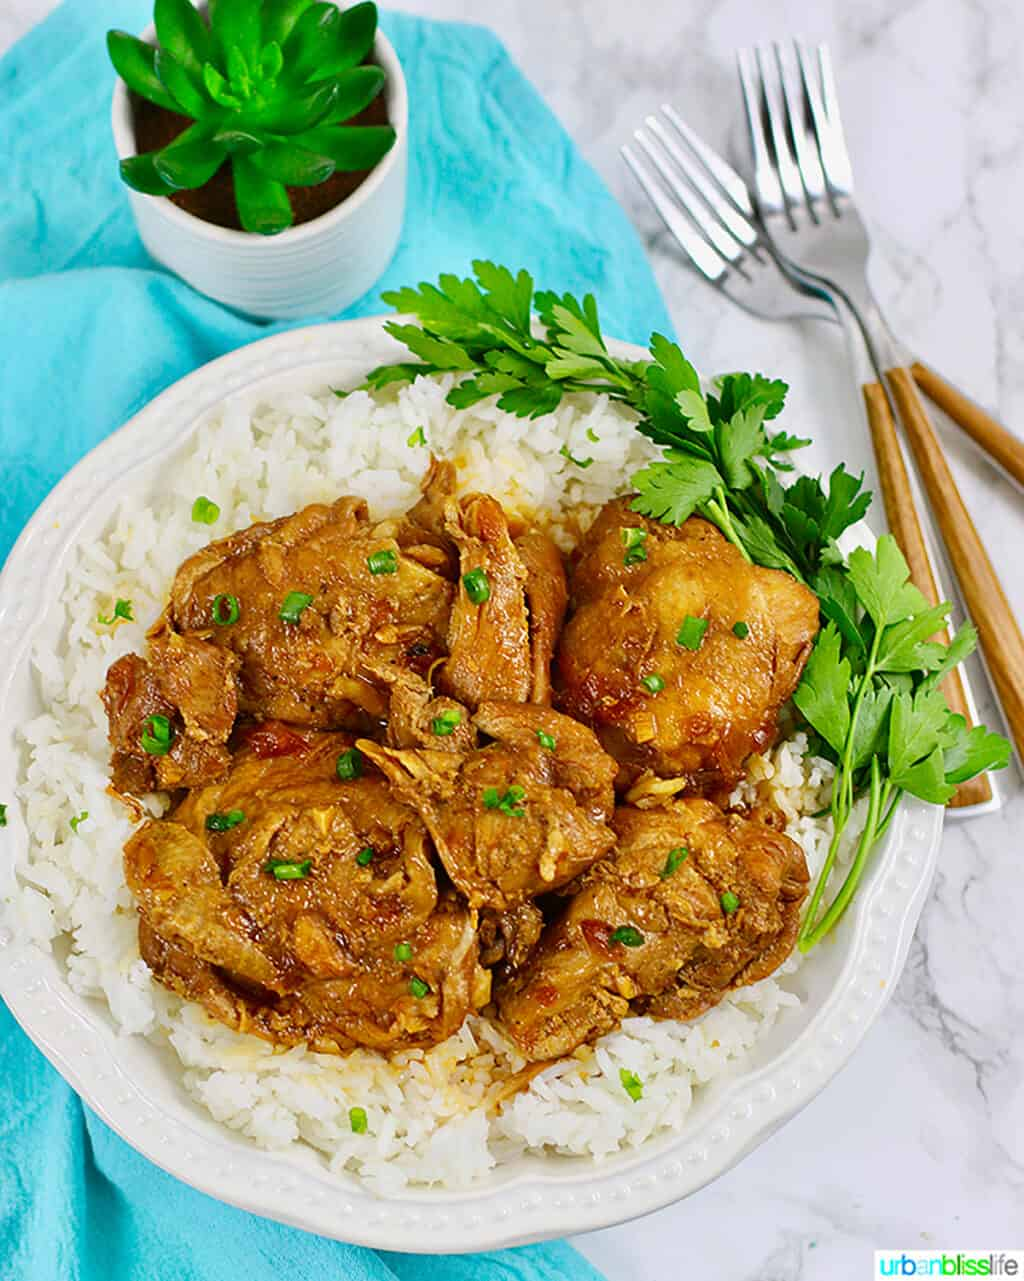 Filipino chicken adobo over rice with forks and a small green plant